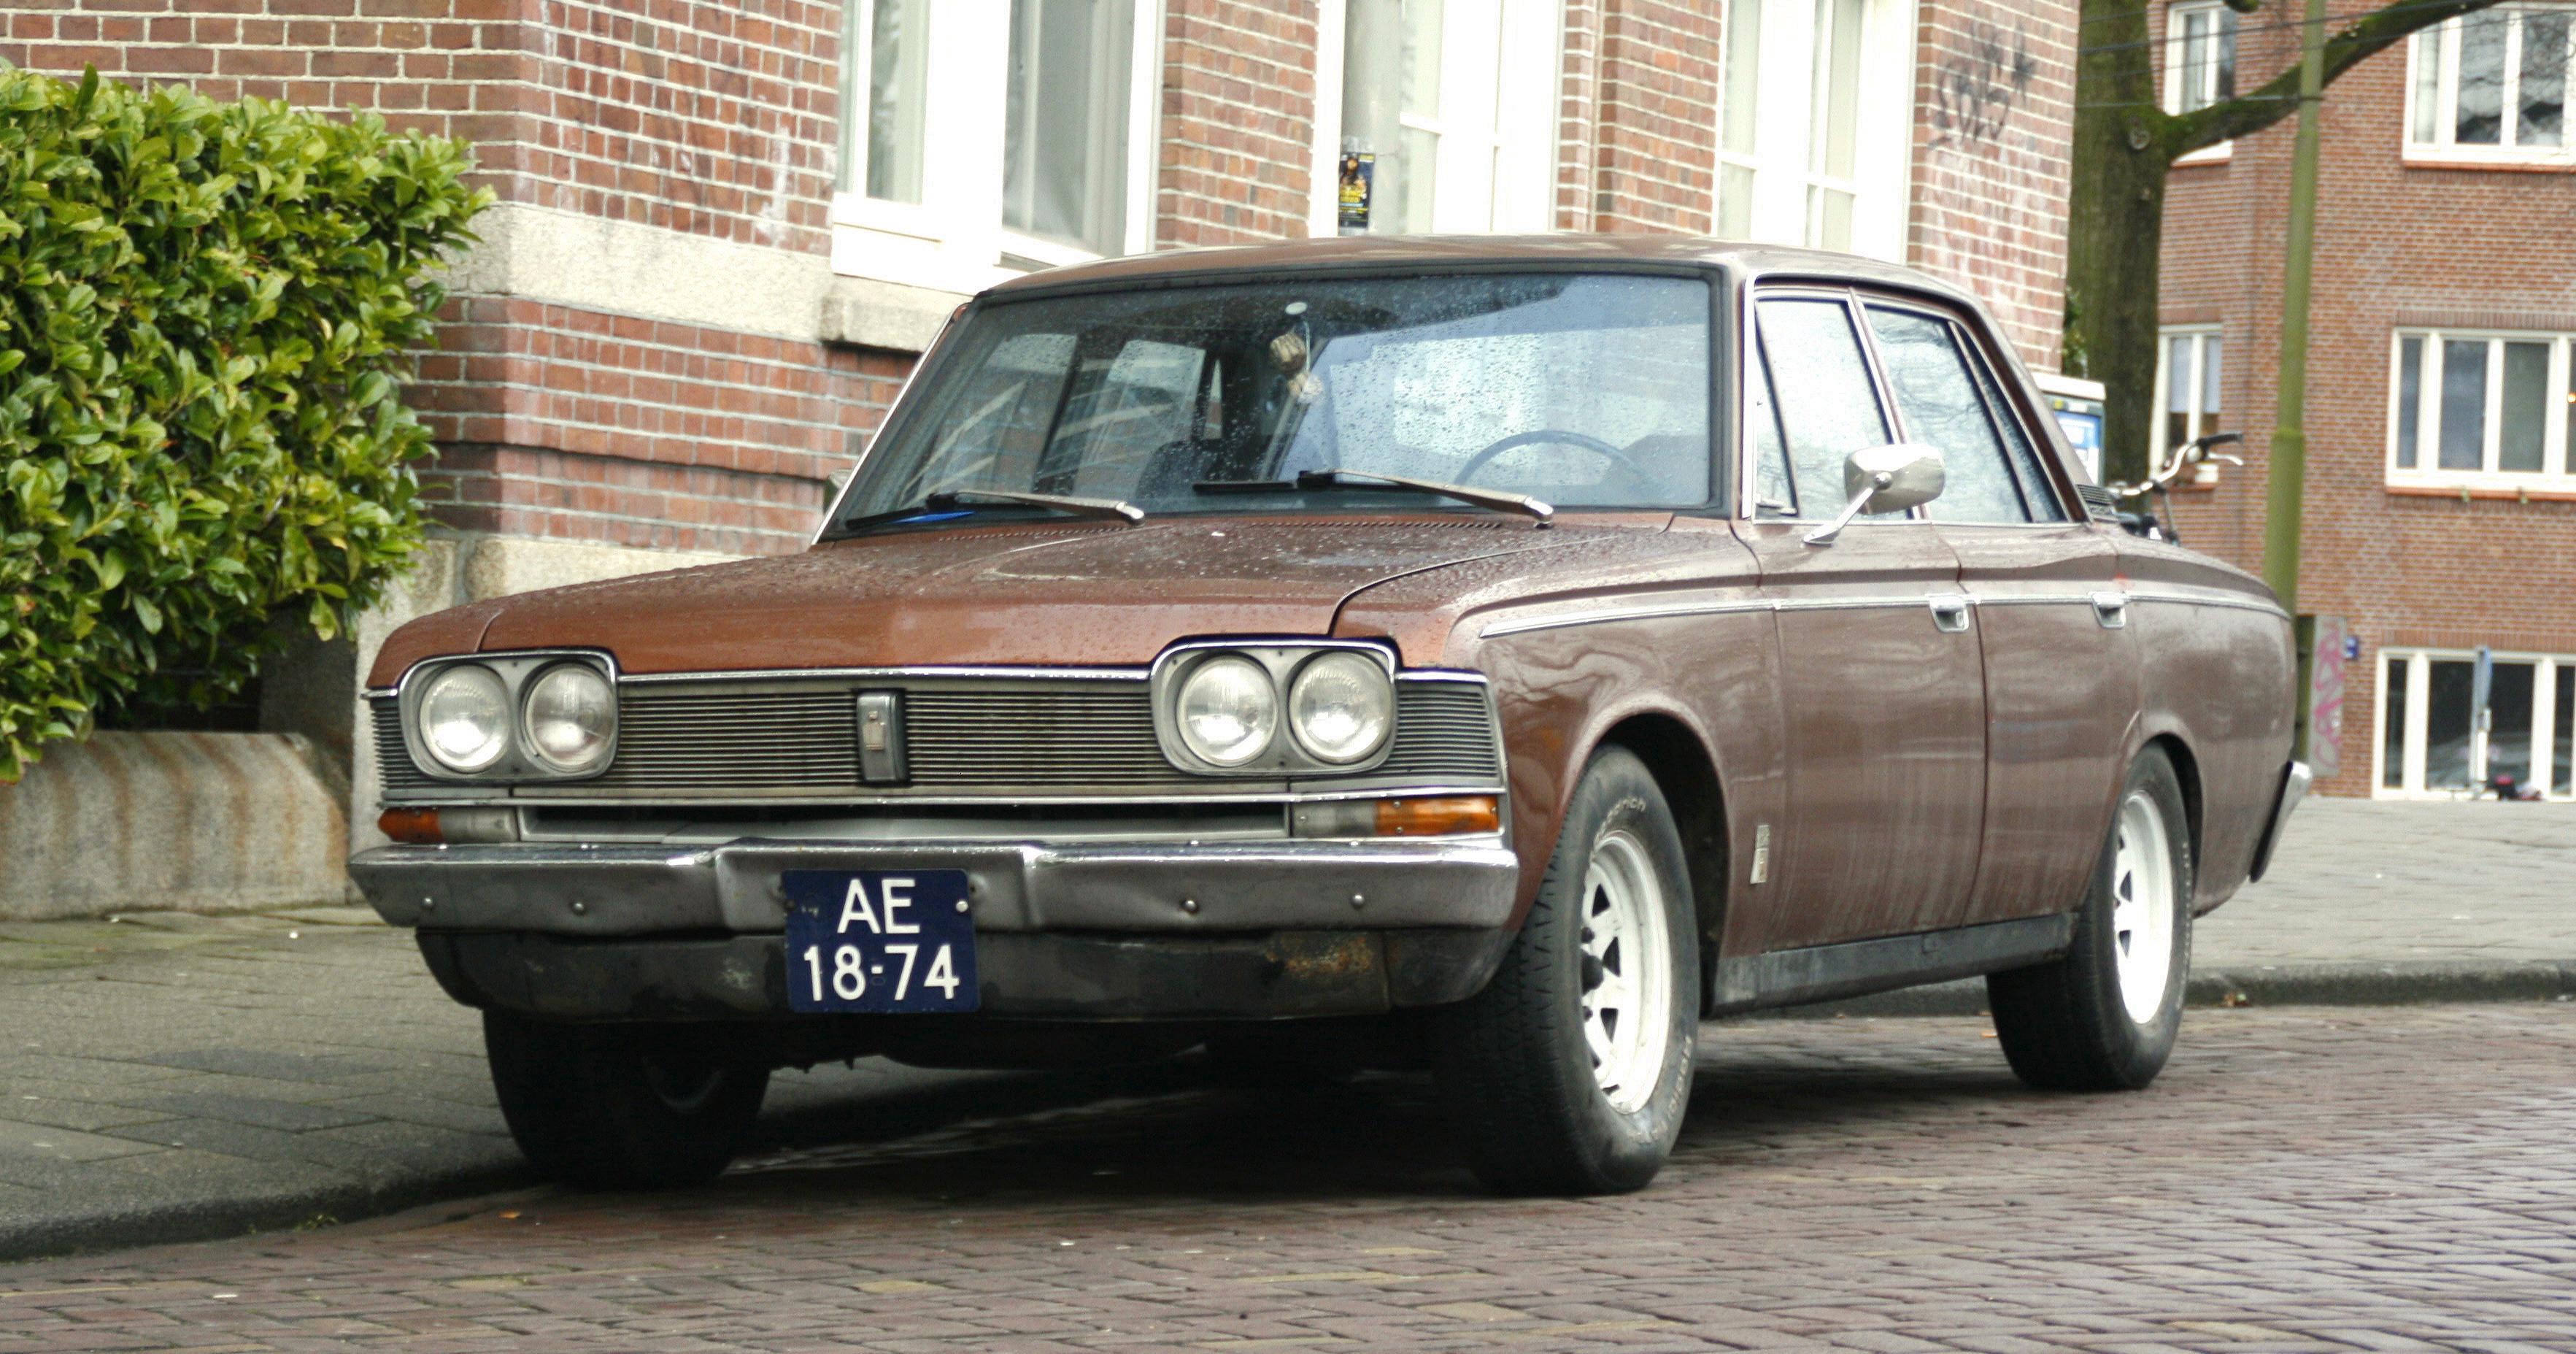 Toyota Crown 2300 De Luxe | Flickr - Photo Sharing!